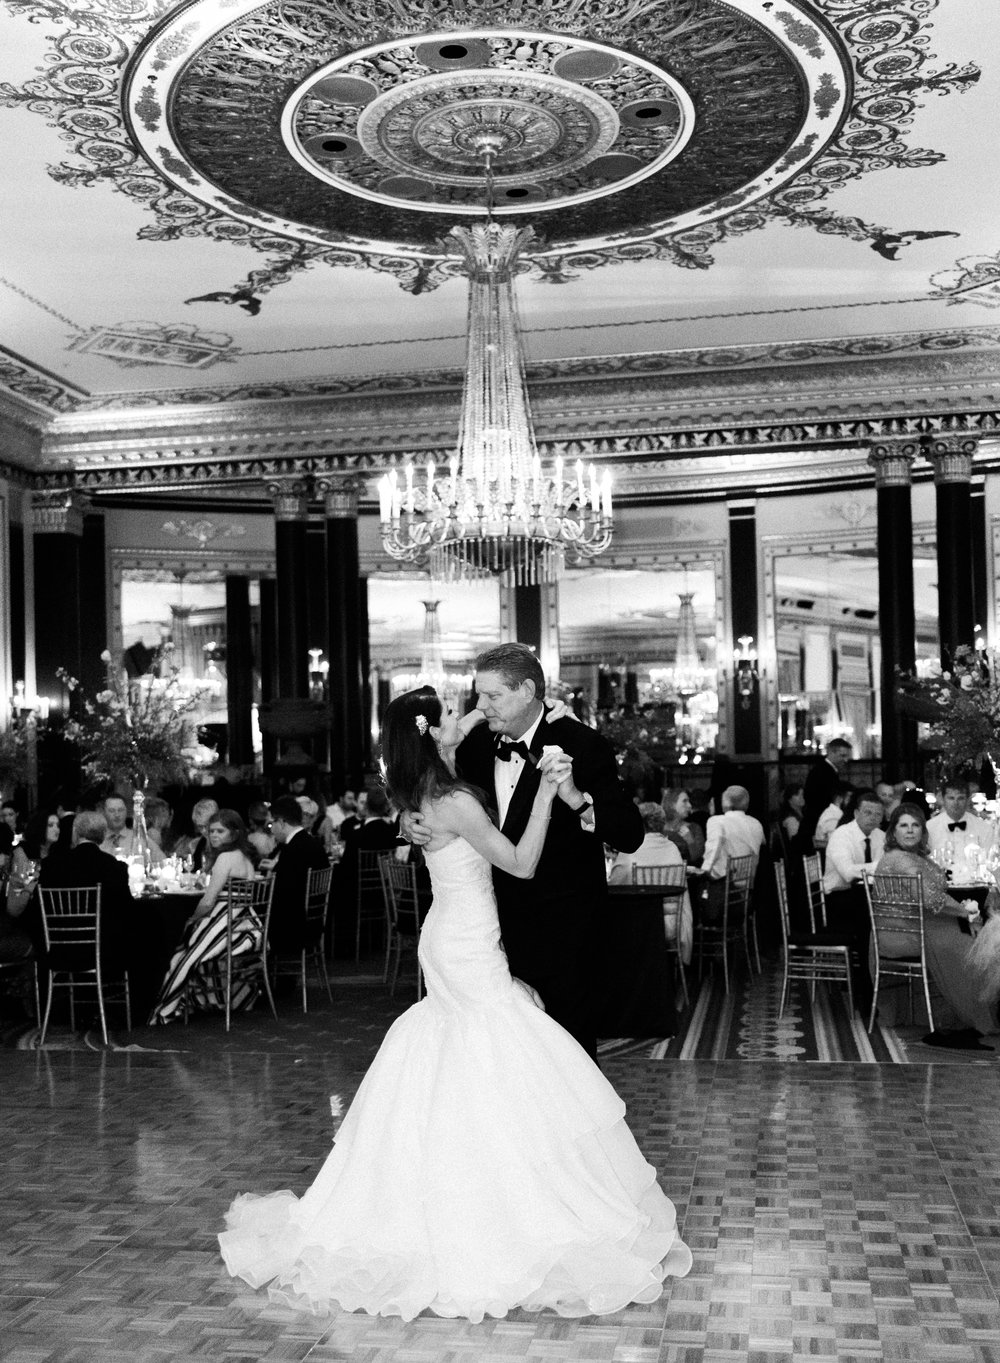 Bonphotage Chicago Wedding Photography Palmer House Hilton